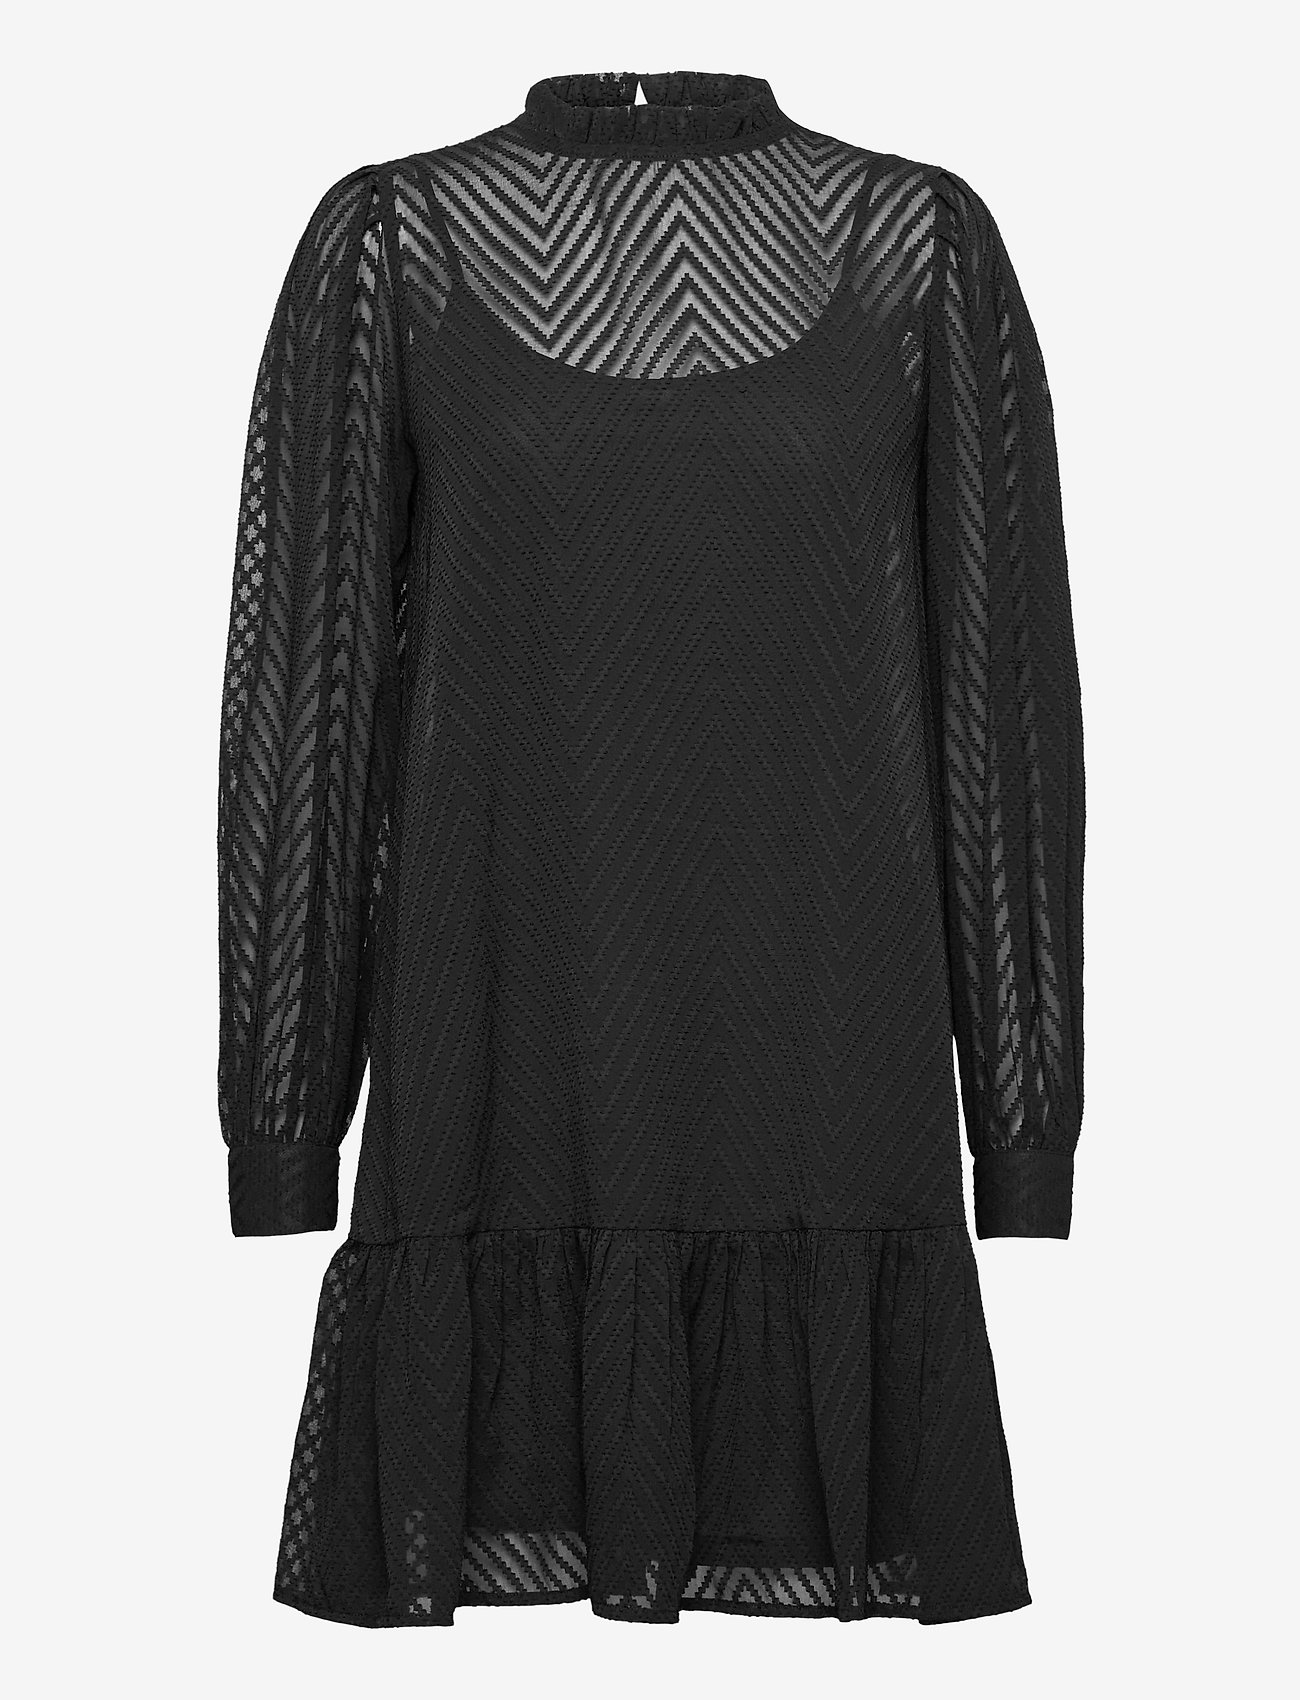 ICHI - IXDONA DR - everyday dresses - black - 0